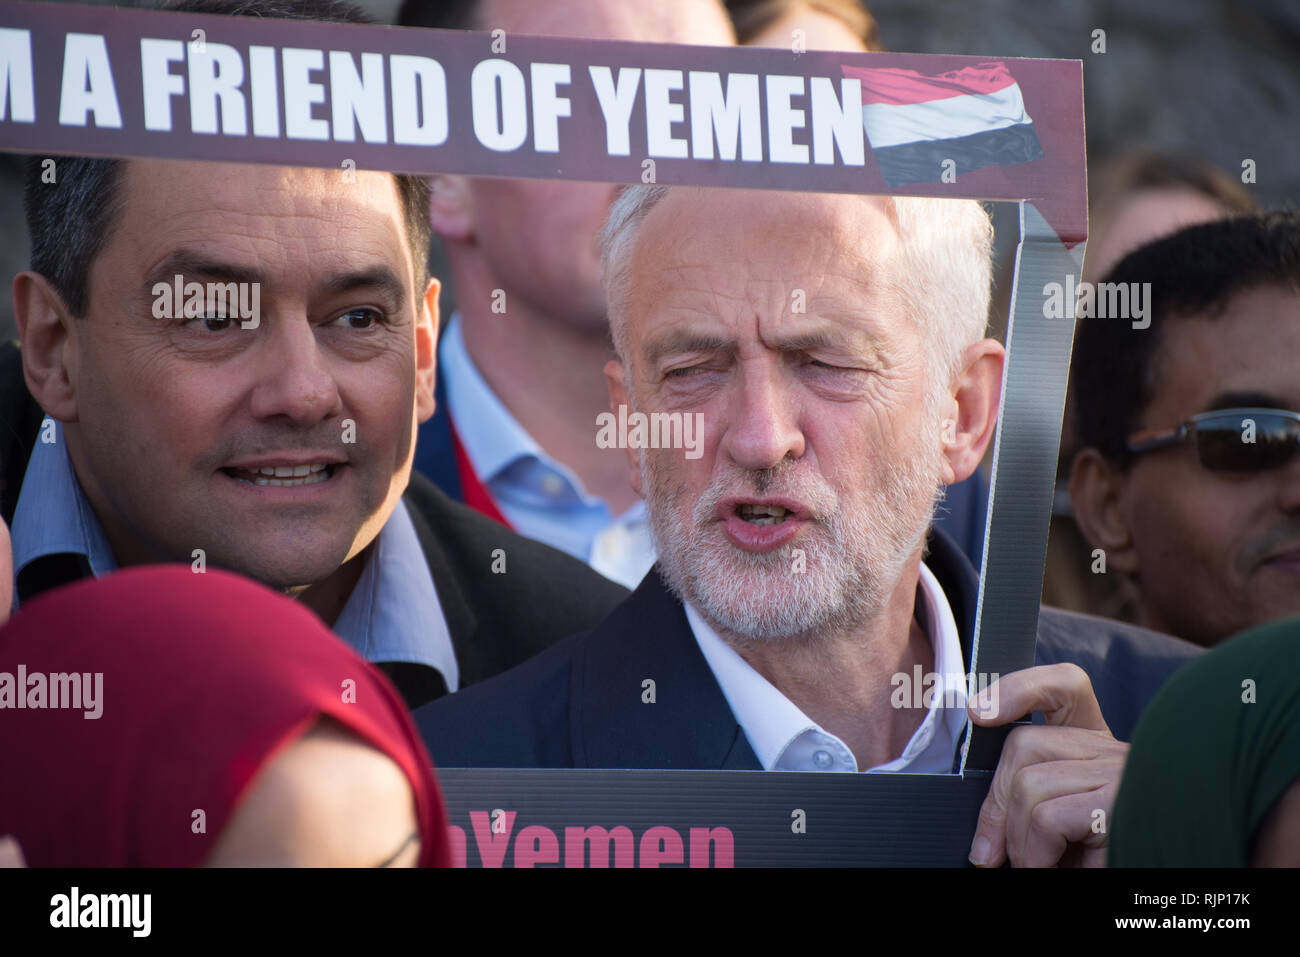 Stephen Twigg MP (L), Member of the United Kingdom Parliament for Liverpool West Derby, and Rt. Hon. Jeremy Corbyn MP (R), Leader of the United Kingdo - Stock Image